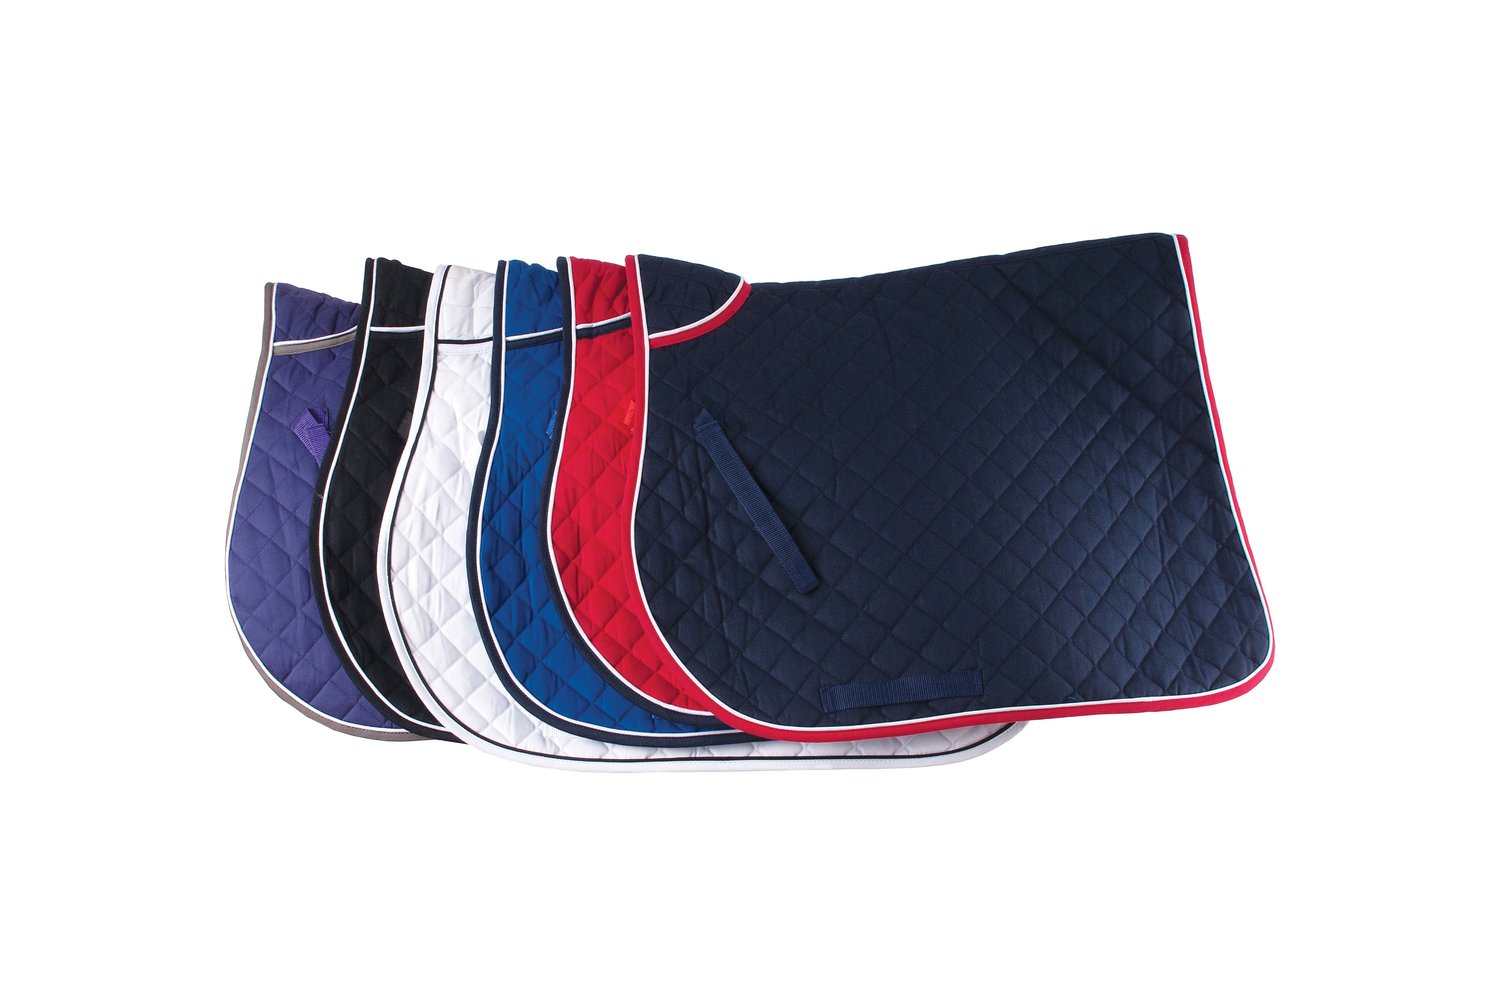 piped edge saddle cloth - £27.50 including 1 embroideryAvailable in Cob or FullAvailable in 6 colours (shown)